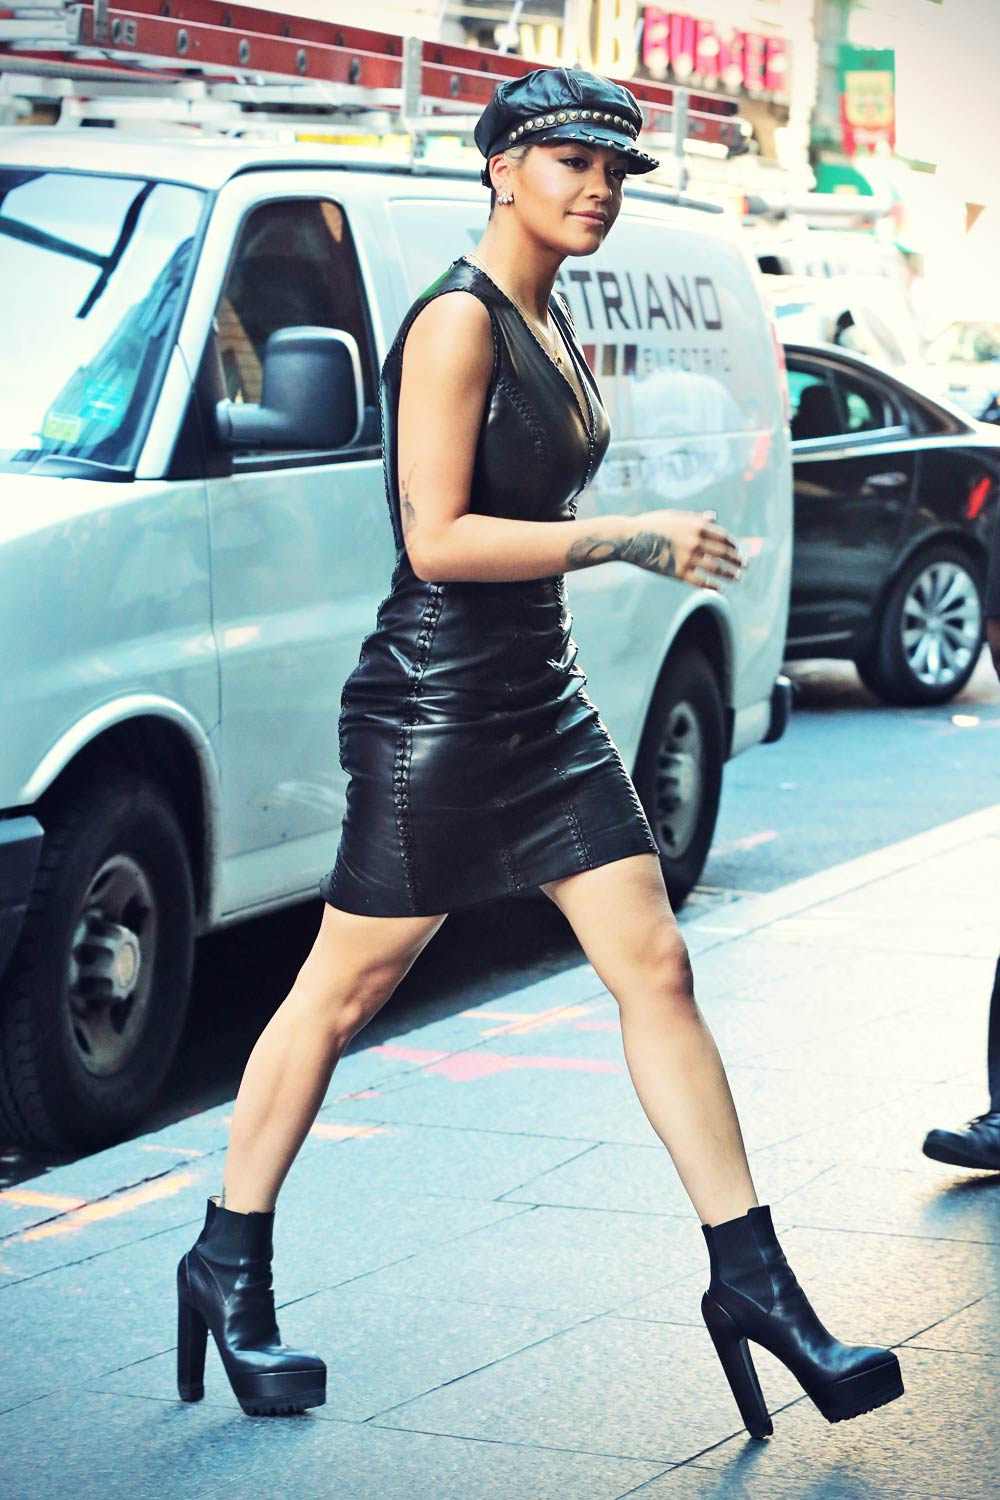 Rita Ora is spotted leaving a building while out and about in New York